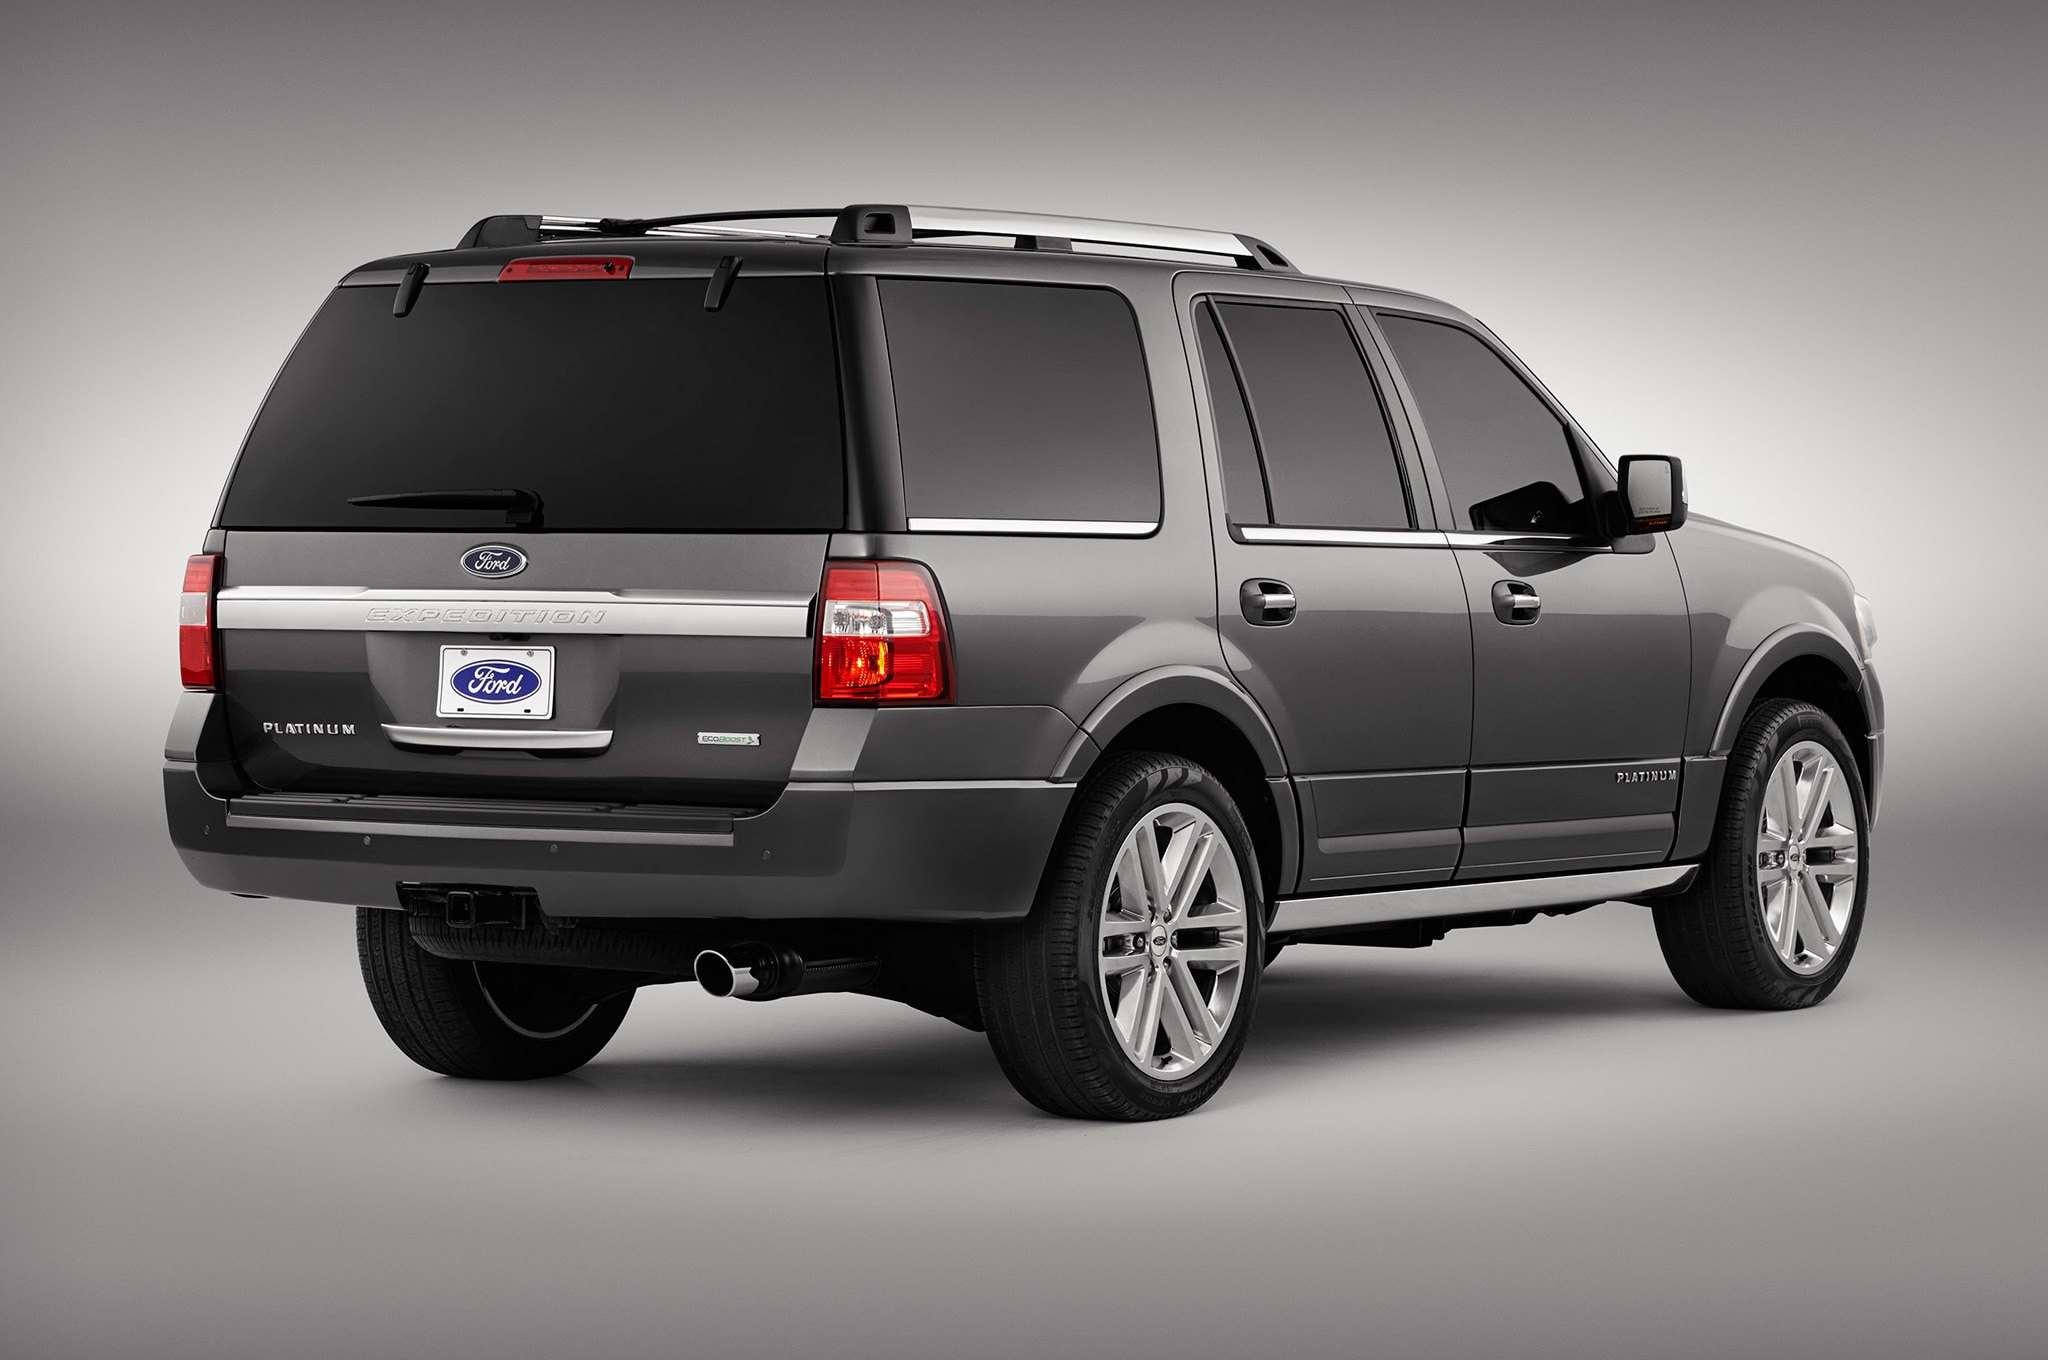 2015 Ford Expedition Updated With EcoBoost V 6 Engine Automobile